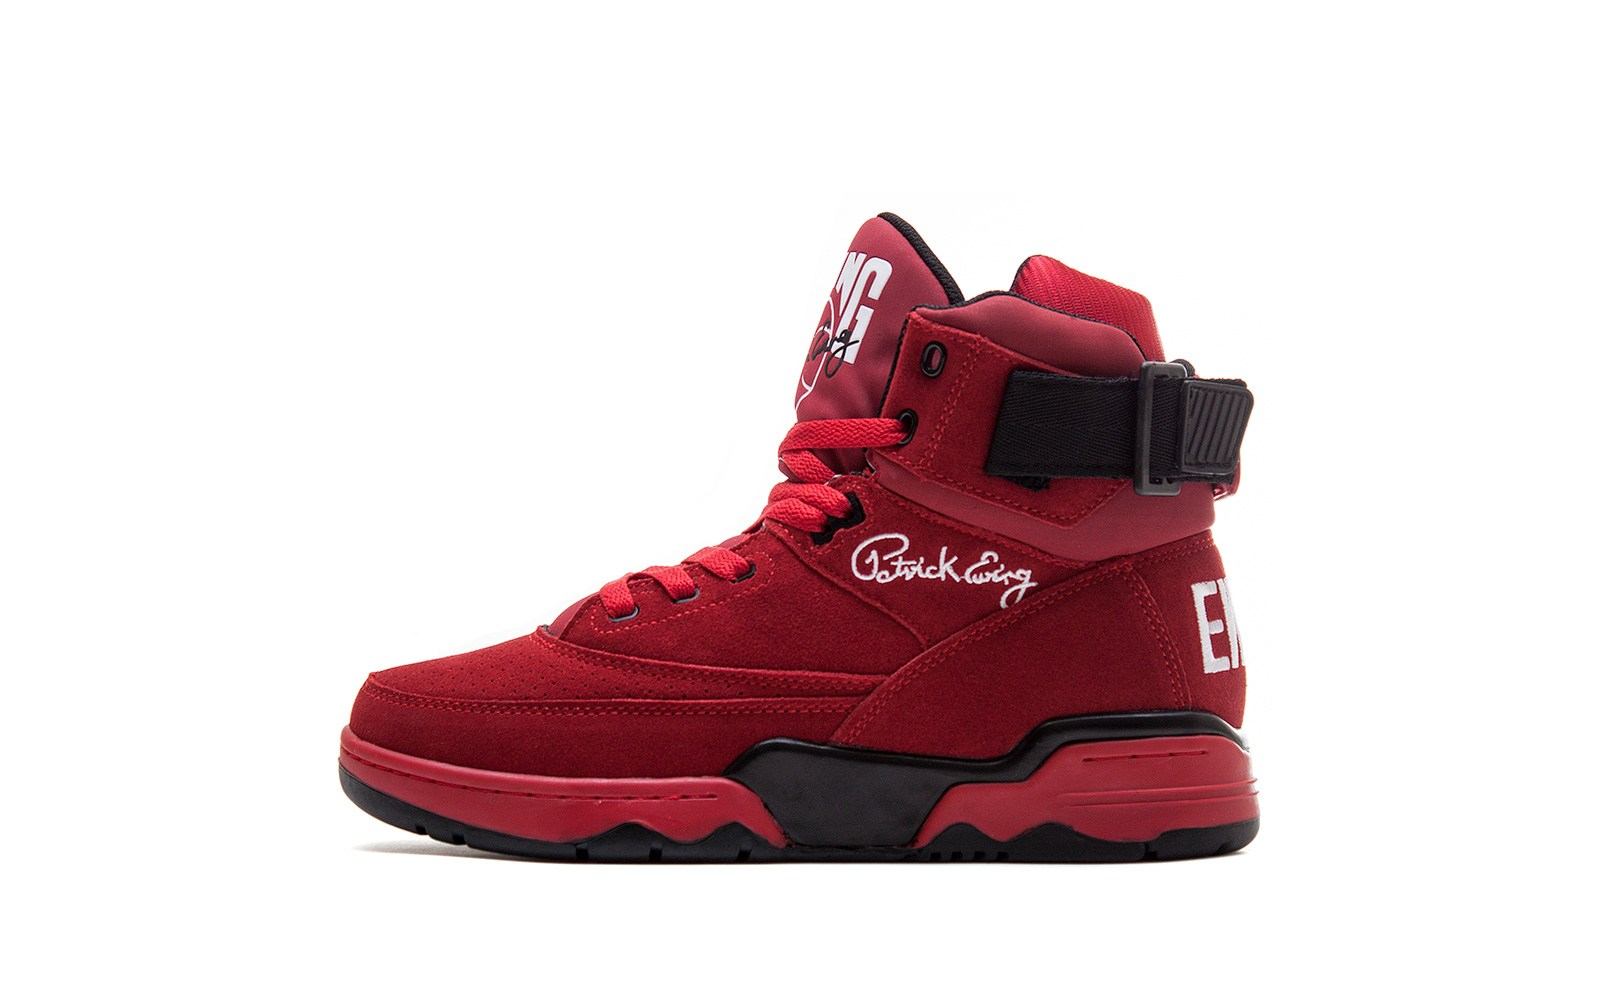 Ewing 33 Hi 'Red Suede' at Sneakersnstuff